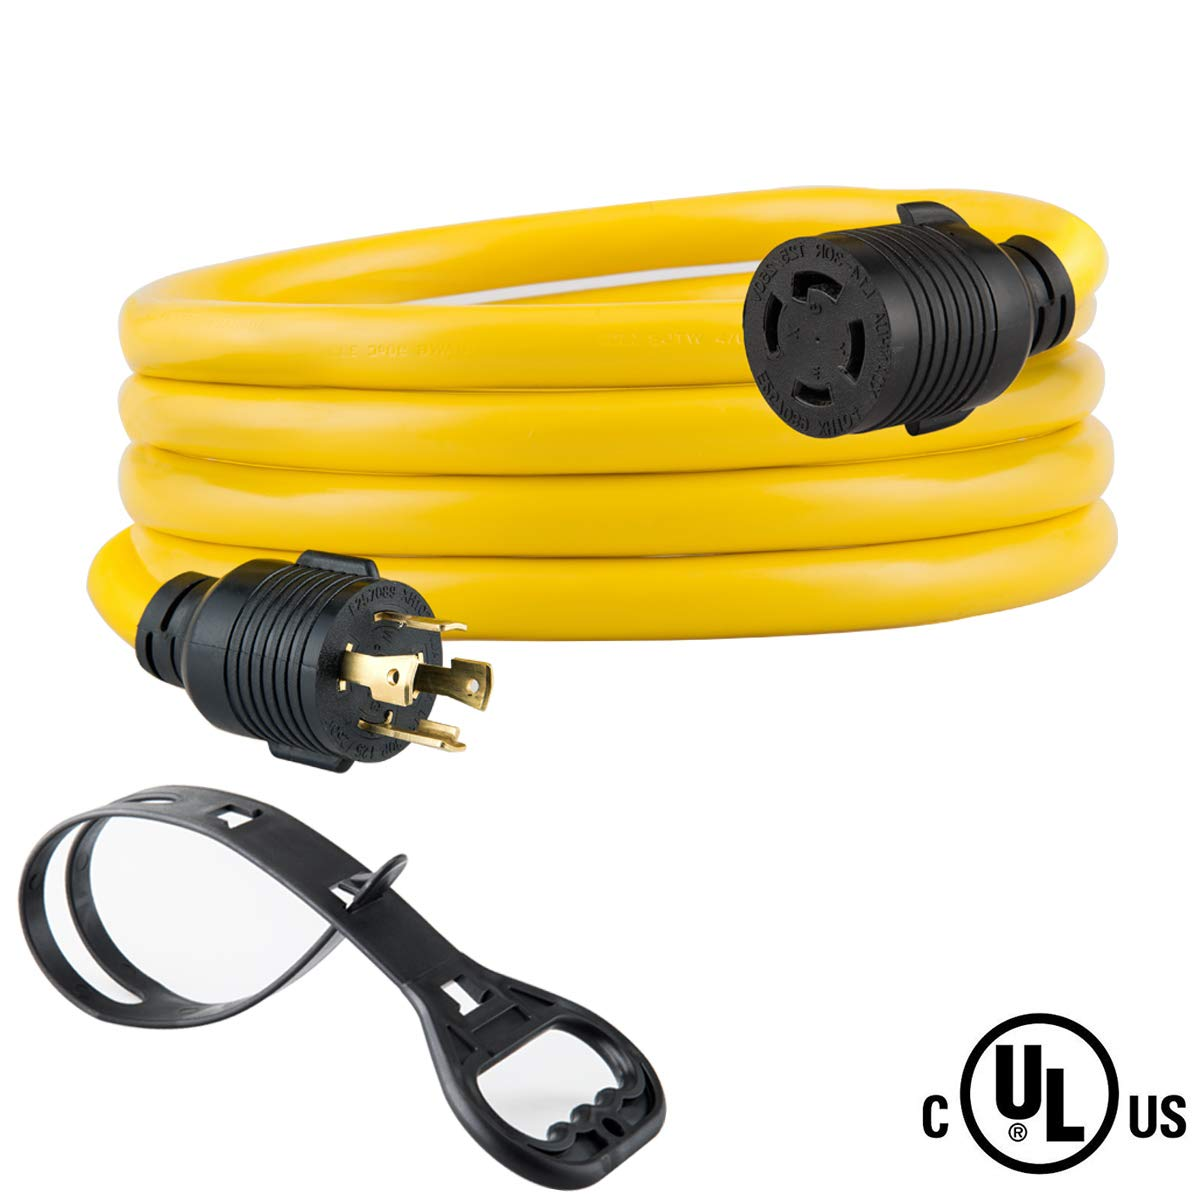 Yodotek 10 FEET Heavy Duty Generator Locking Power Cord NEMA L14-30P/L14-30R,4 Prong 10 Gauge SJTW Cable, 125/250V 30Amp 7500 Watts Yellow Generator Lock Extension Cord with UL Listed by Yodotek